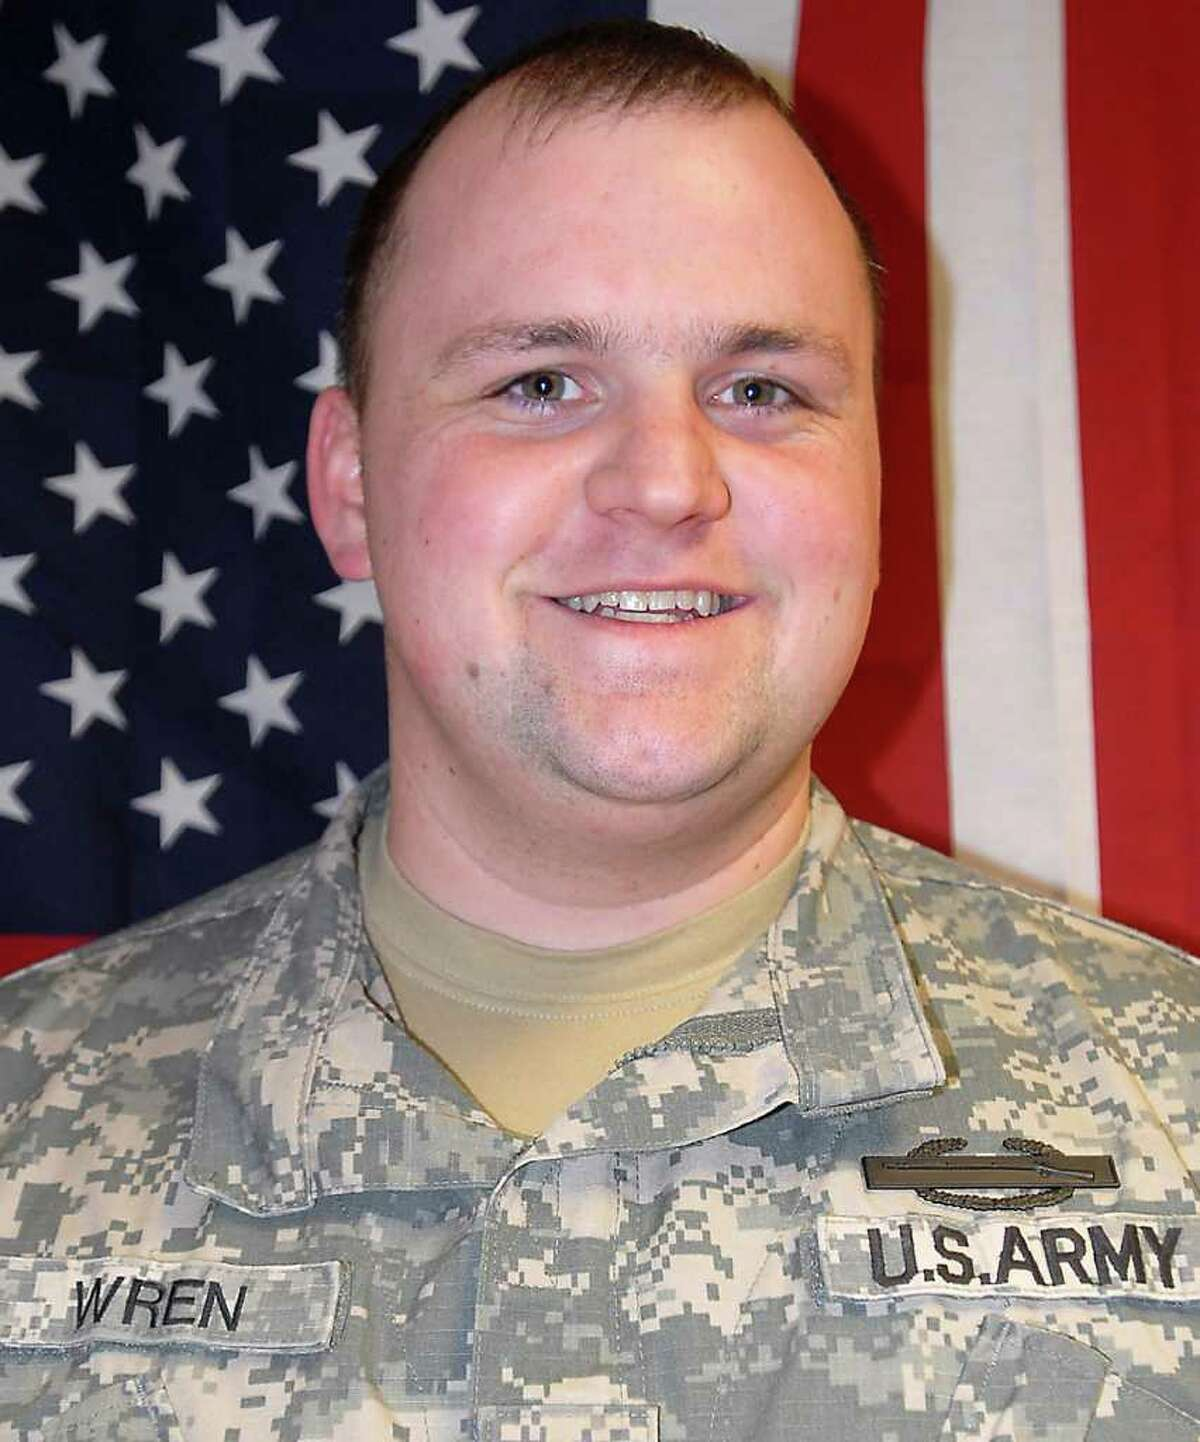 Spc. Charles J. Wren, 25, died Saturday, April 16, 2011, after being hit by the blast of an improvised explosive device in Nimroz province.